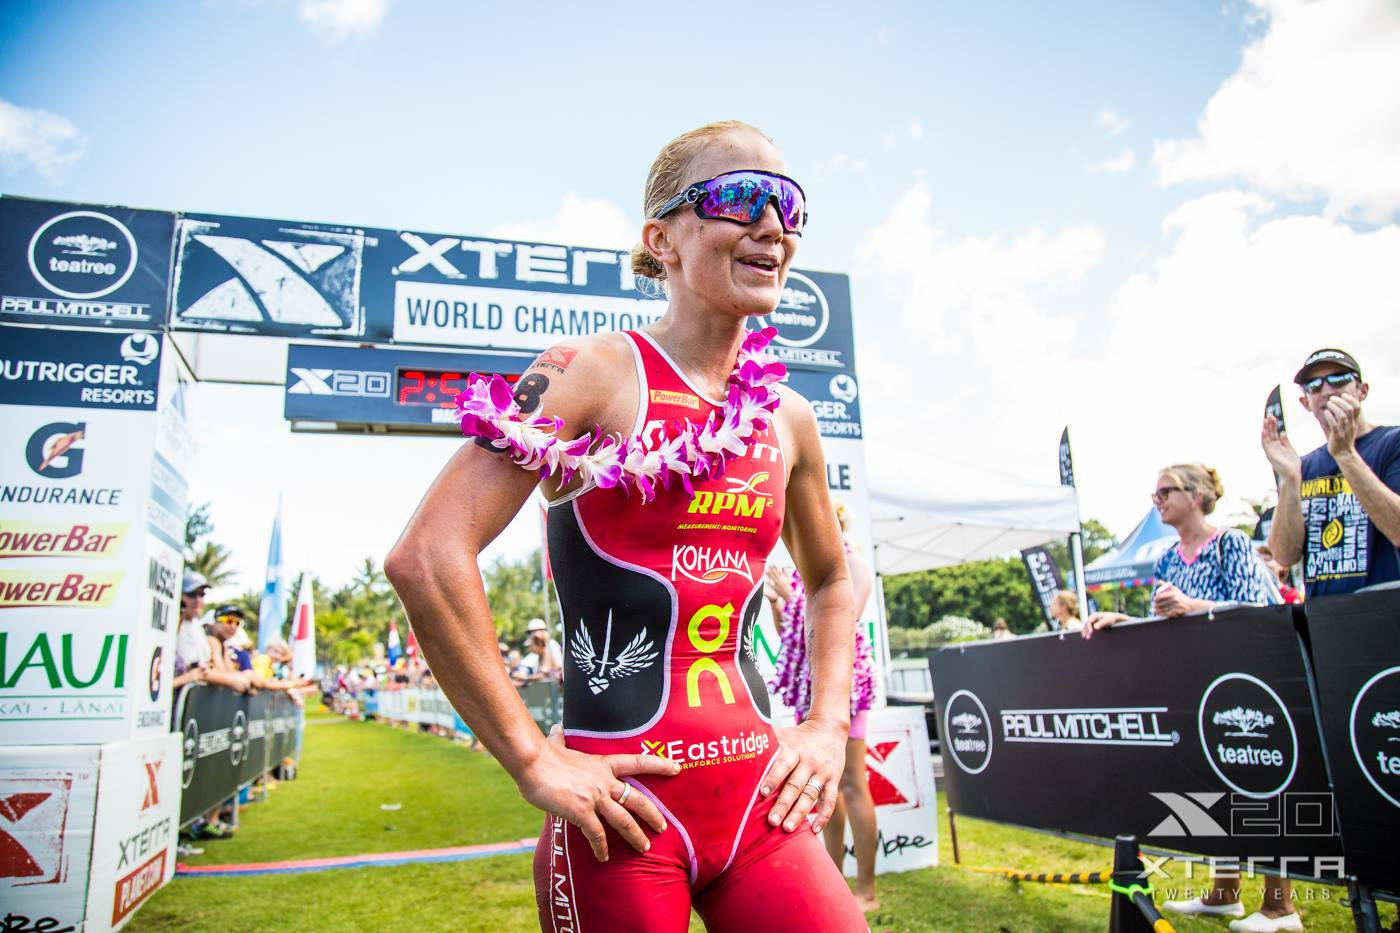 XTERRA_WORLD_CHAMPIONSHIP_2015_00056